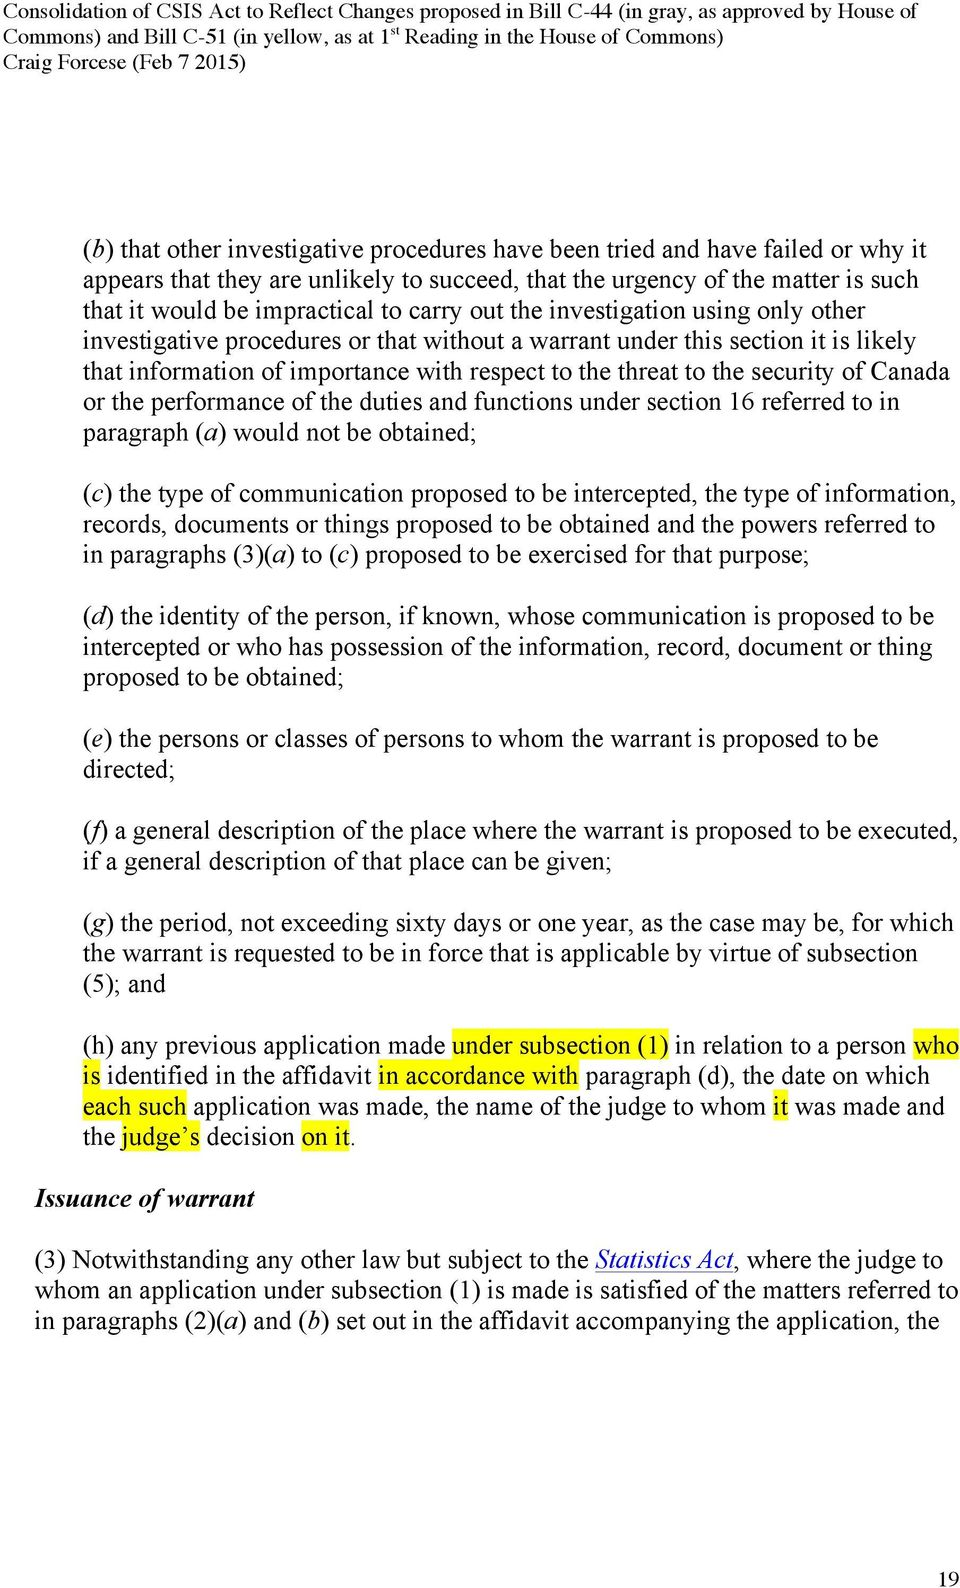 security of Canada or the performance of the duties and functions under section 16 referred to in paragraph (a) would not be obtained; (c) the type of communication proposed to be intercepted, the